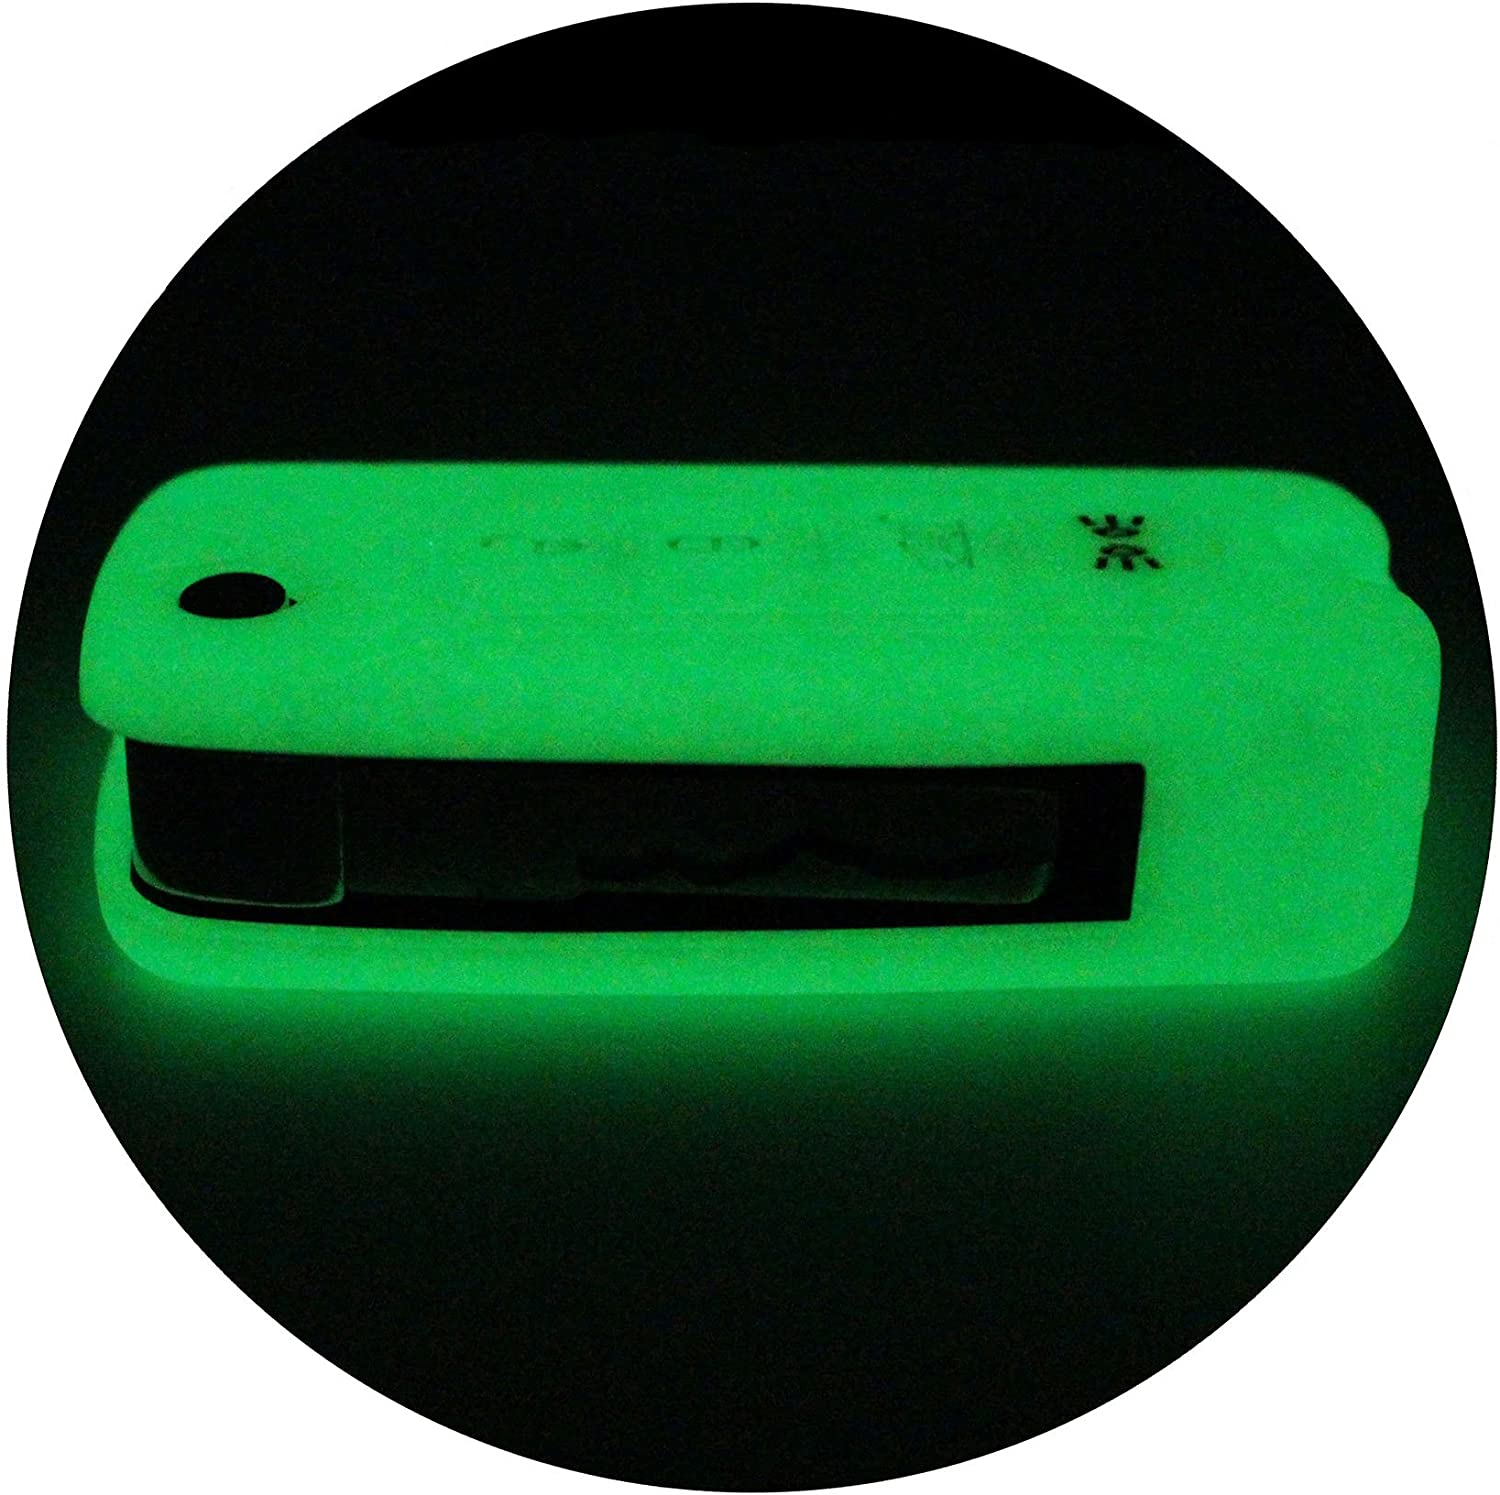 Silicone keycover JA for 4 Button Keys Keycover Etui Flip Key protective cover Remote Entry Fob Case night glow